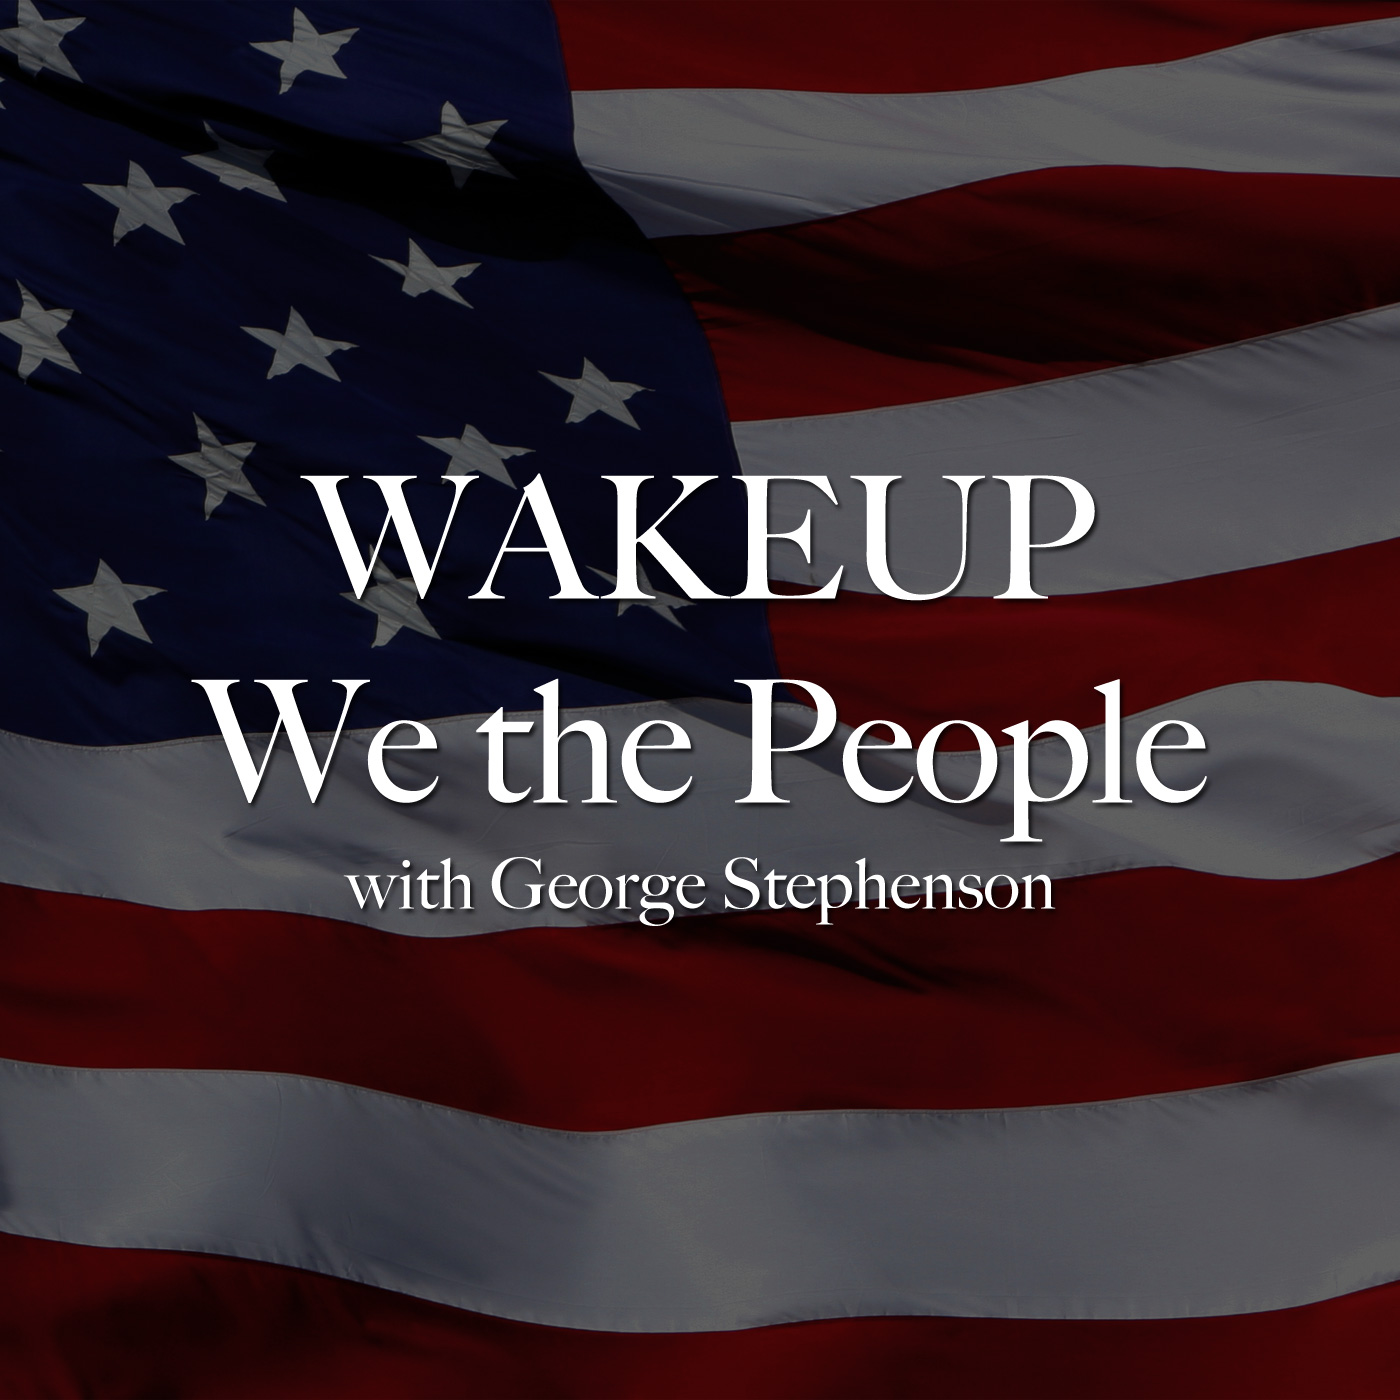 WakeUP We The People